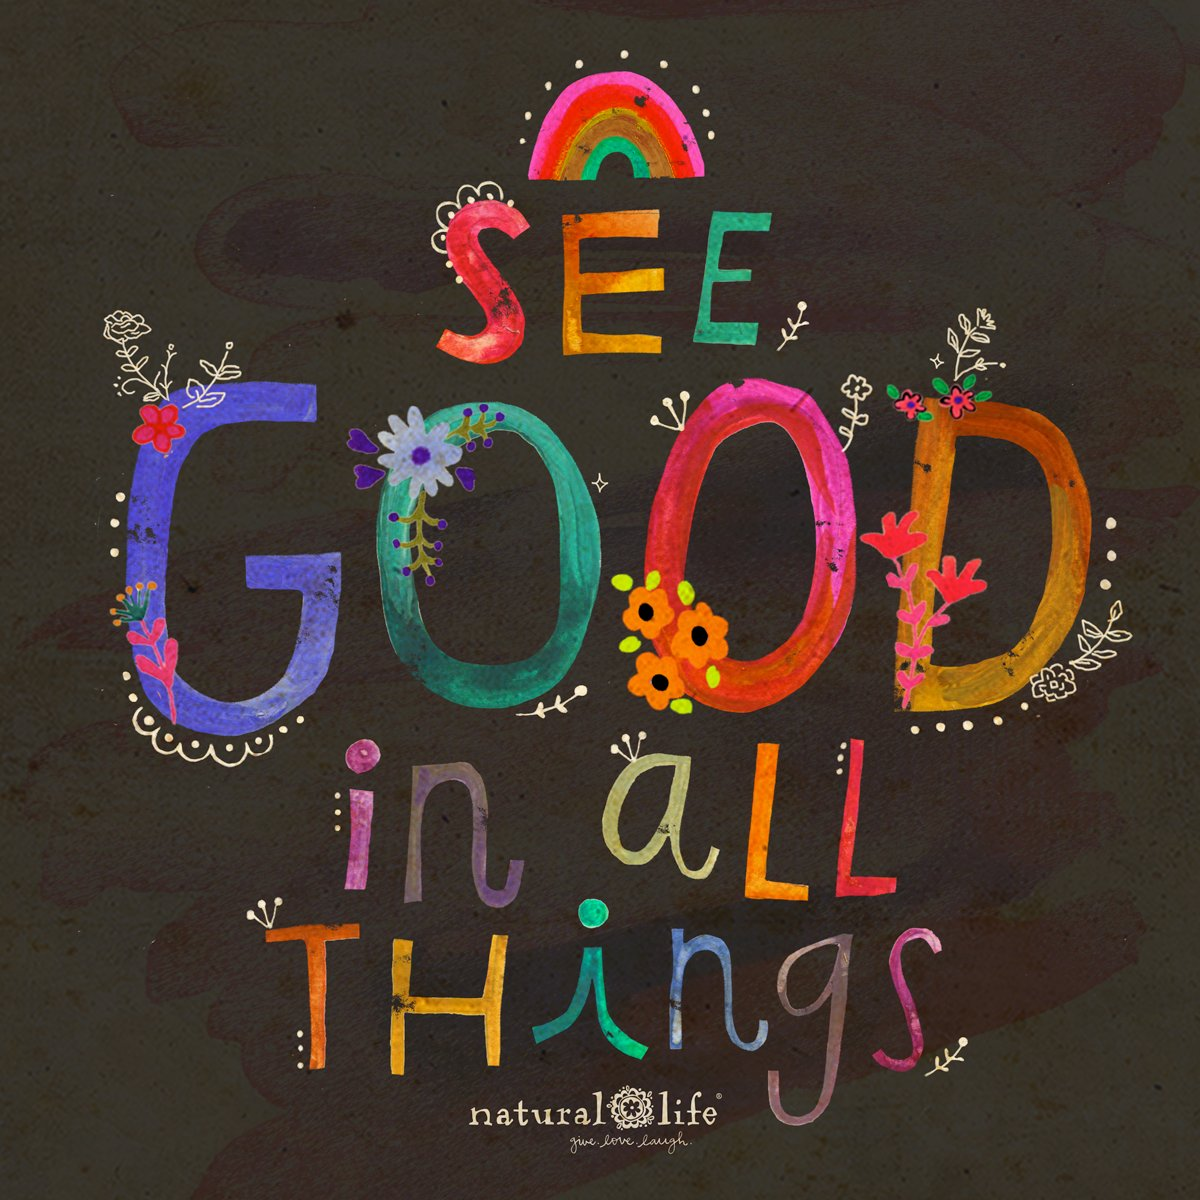 See #Good in ALL things! #JoyTrain #Joy #Love #Peace #Kindness RT @Natural_Life https://t.co/euOY0CkYIc